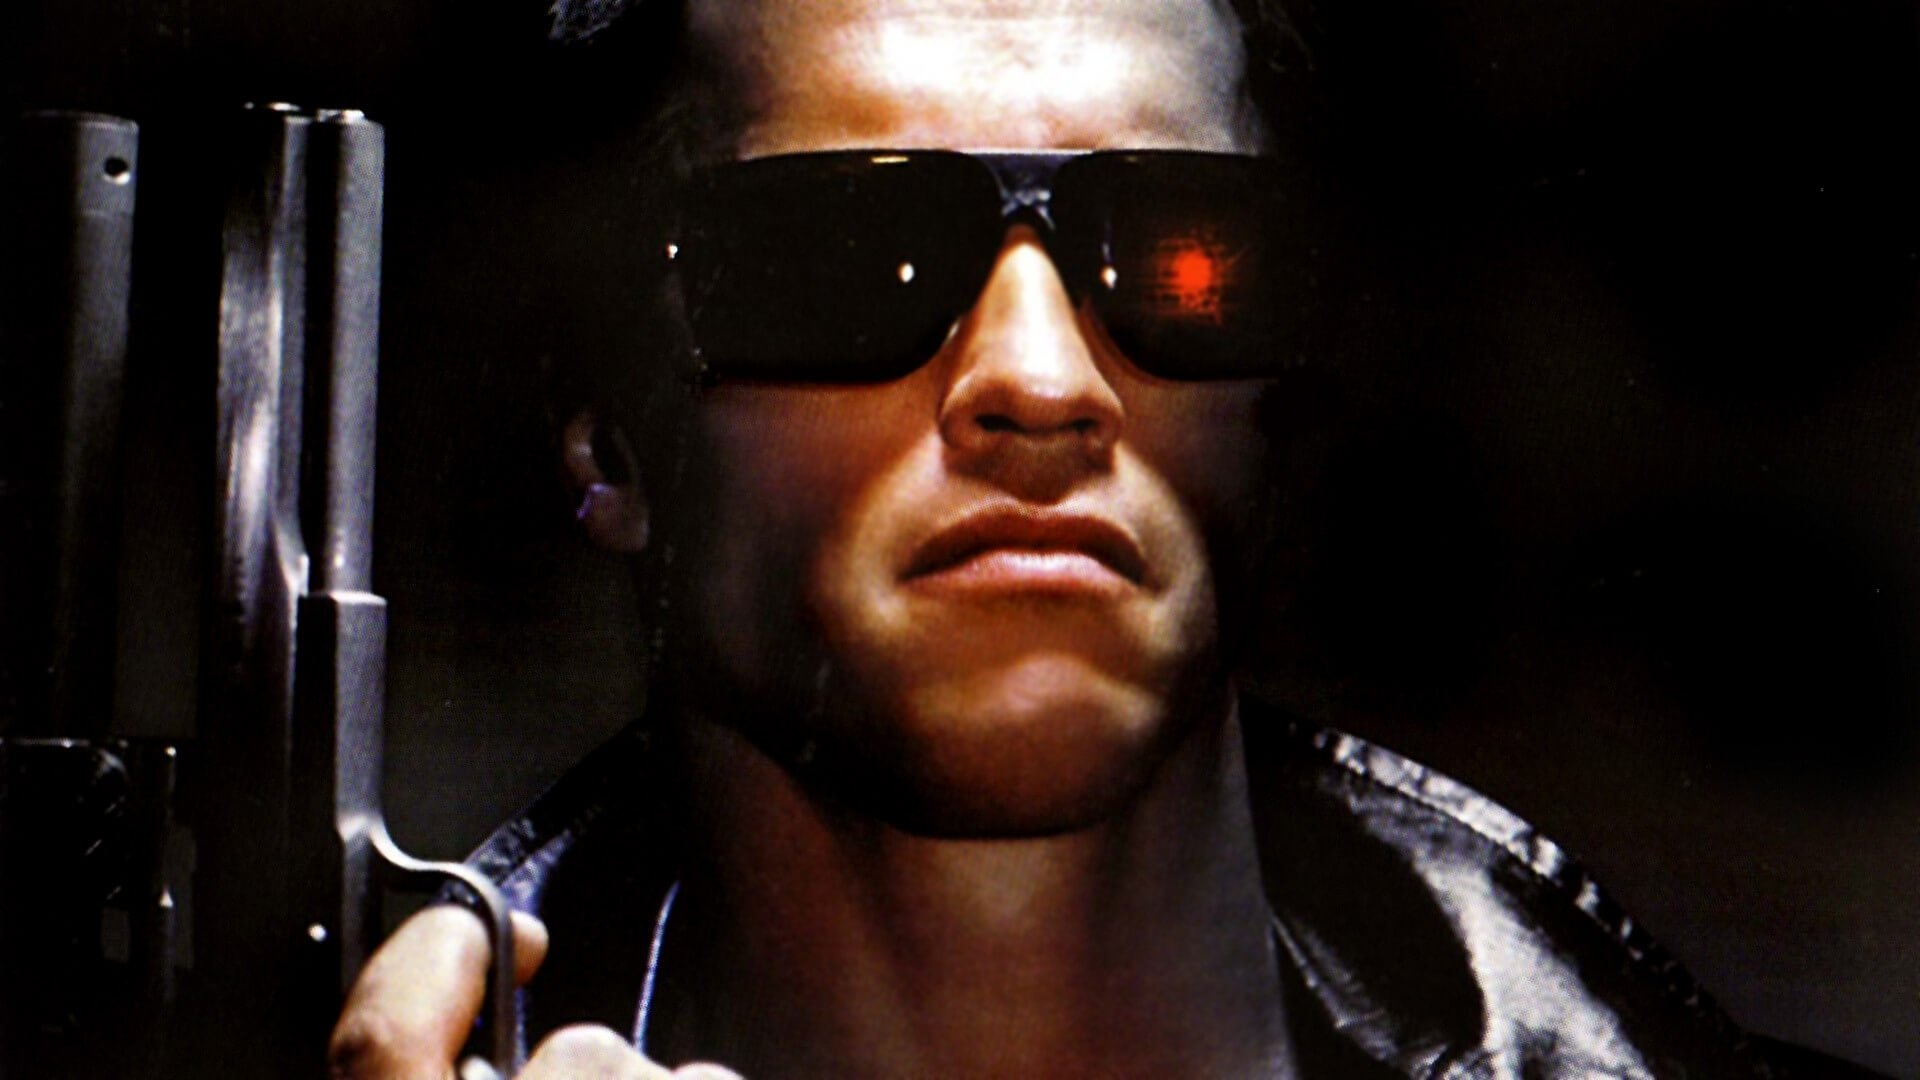 What Role Will Arnold Schwarzenegger Play In The Next Terminator Film?